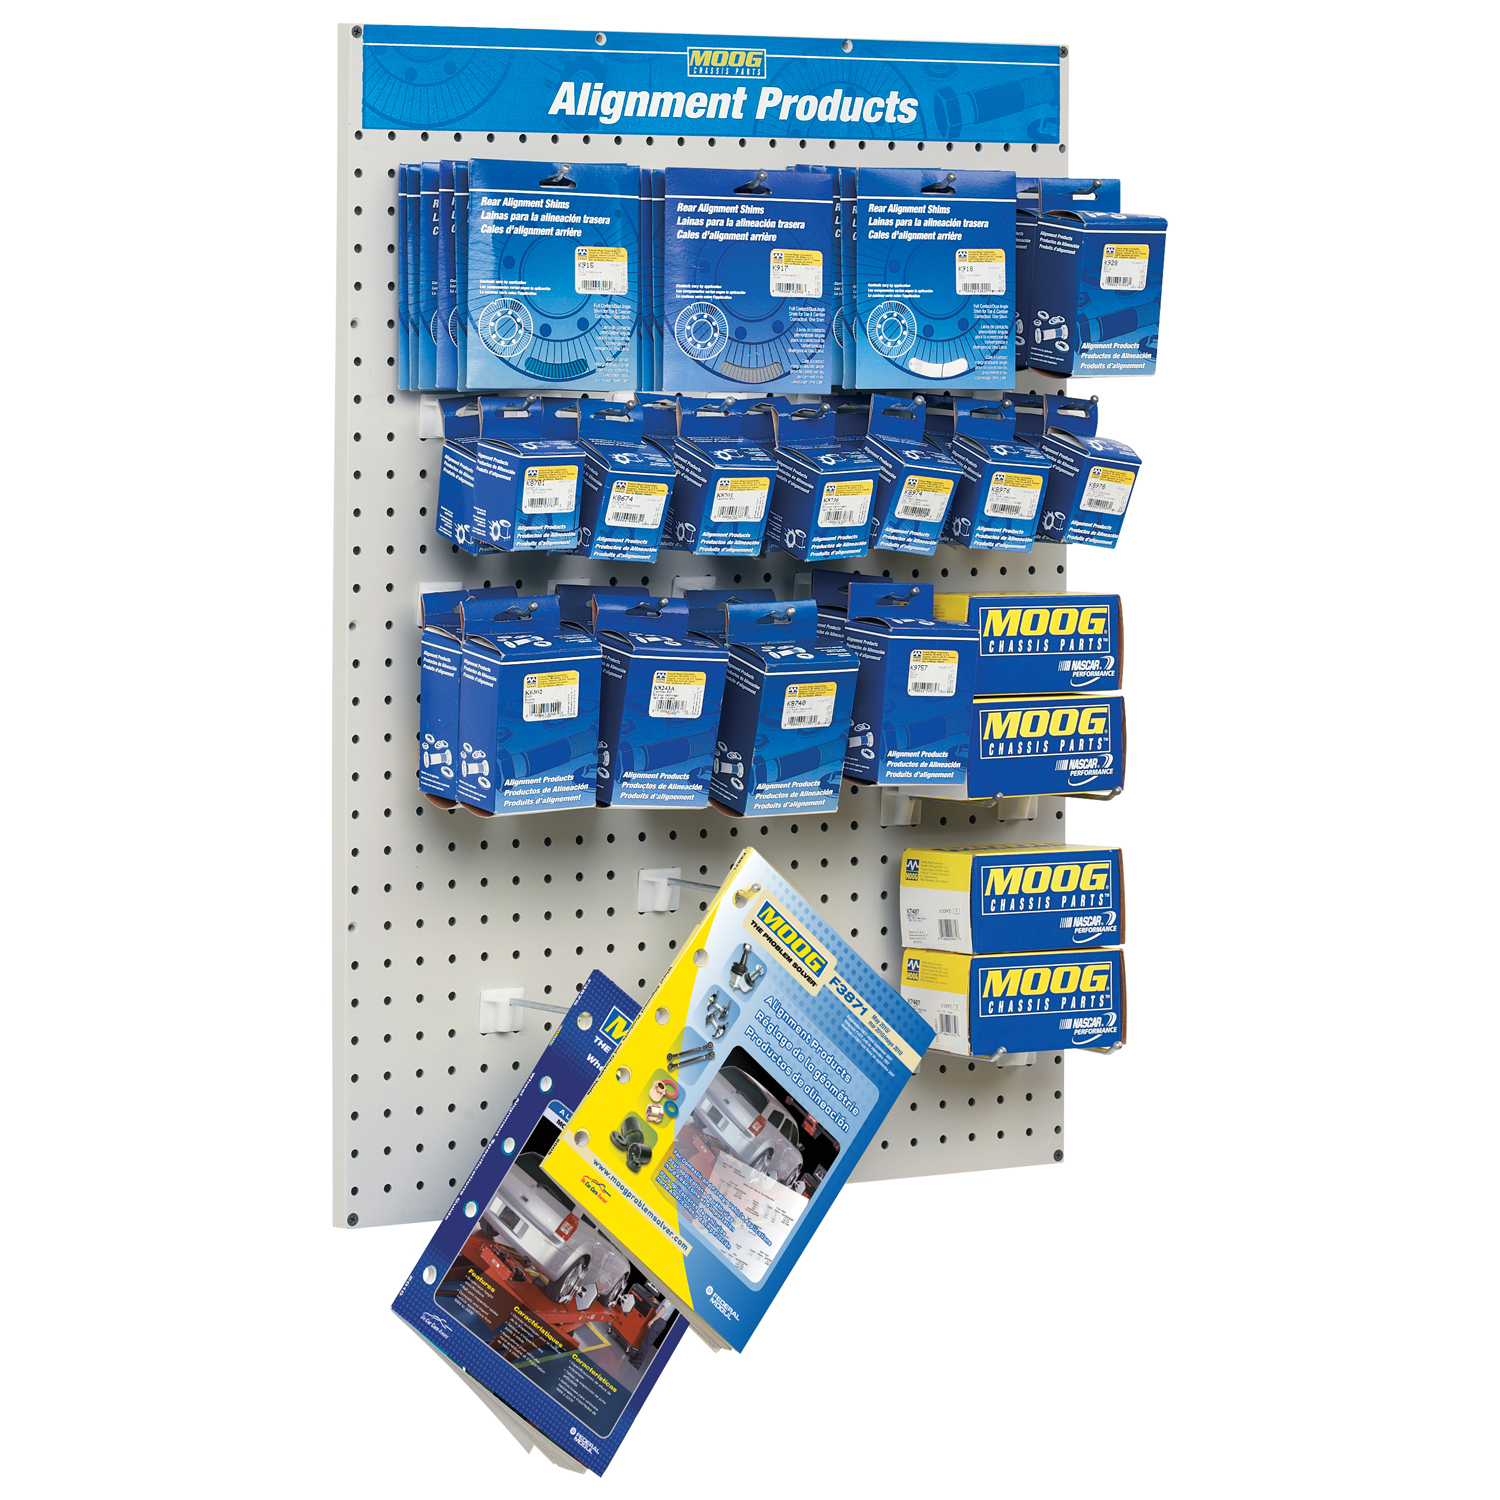 Alignment Products Assortment